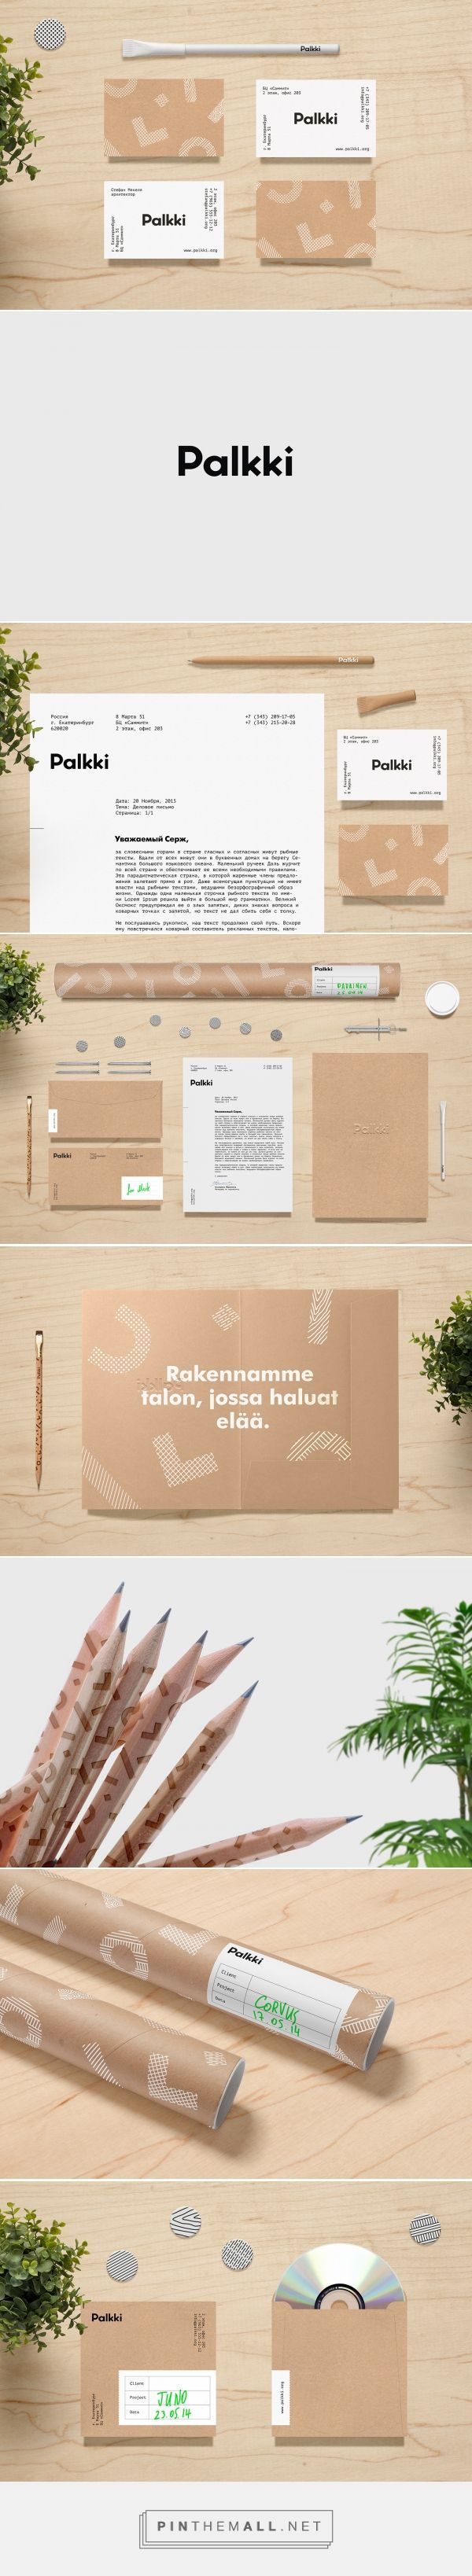 Branding graphic design and packaging for Palkki